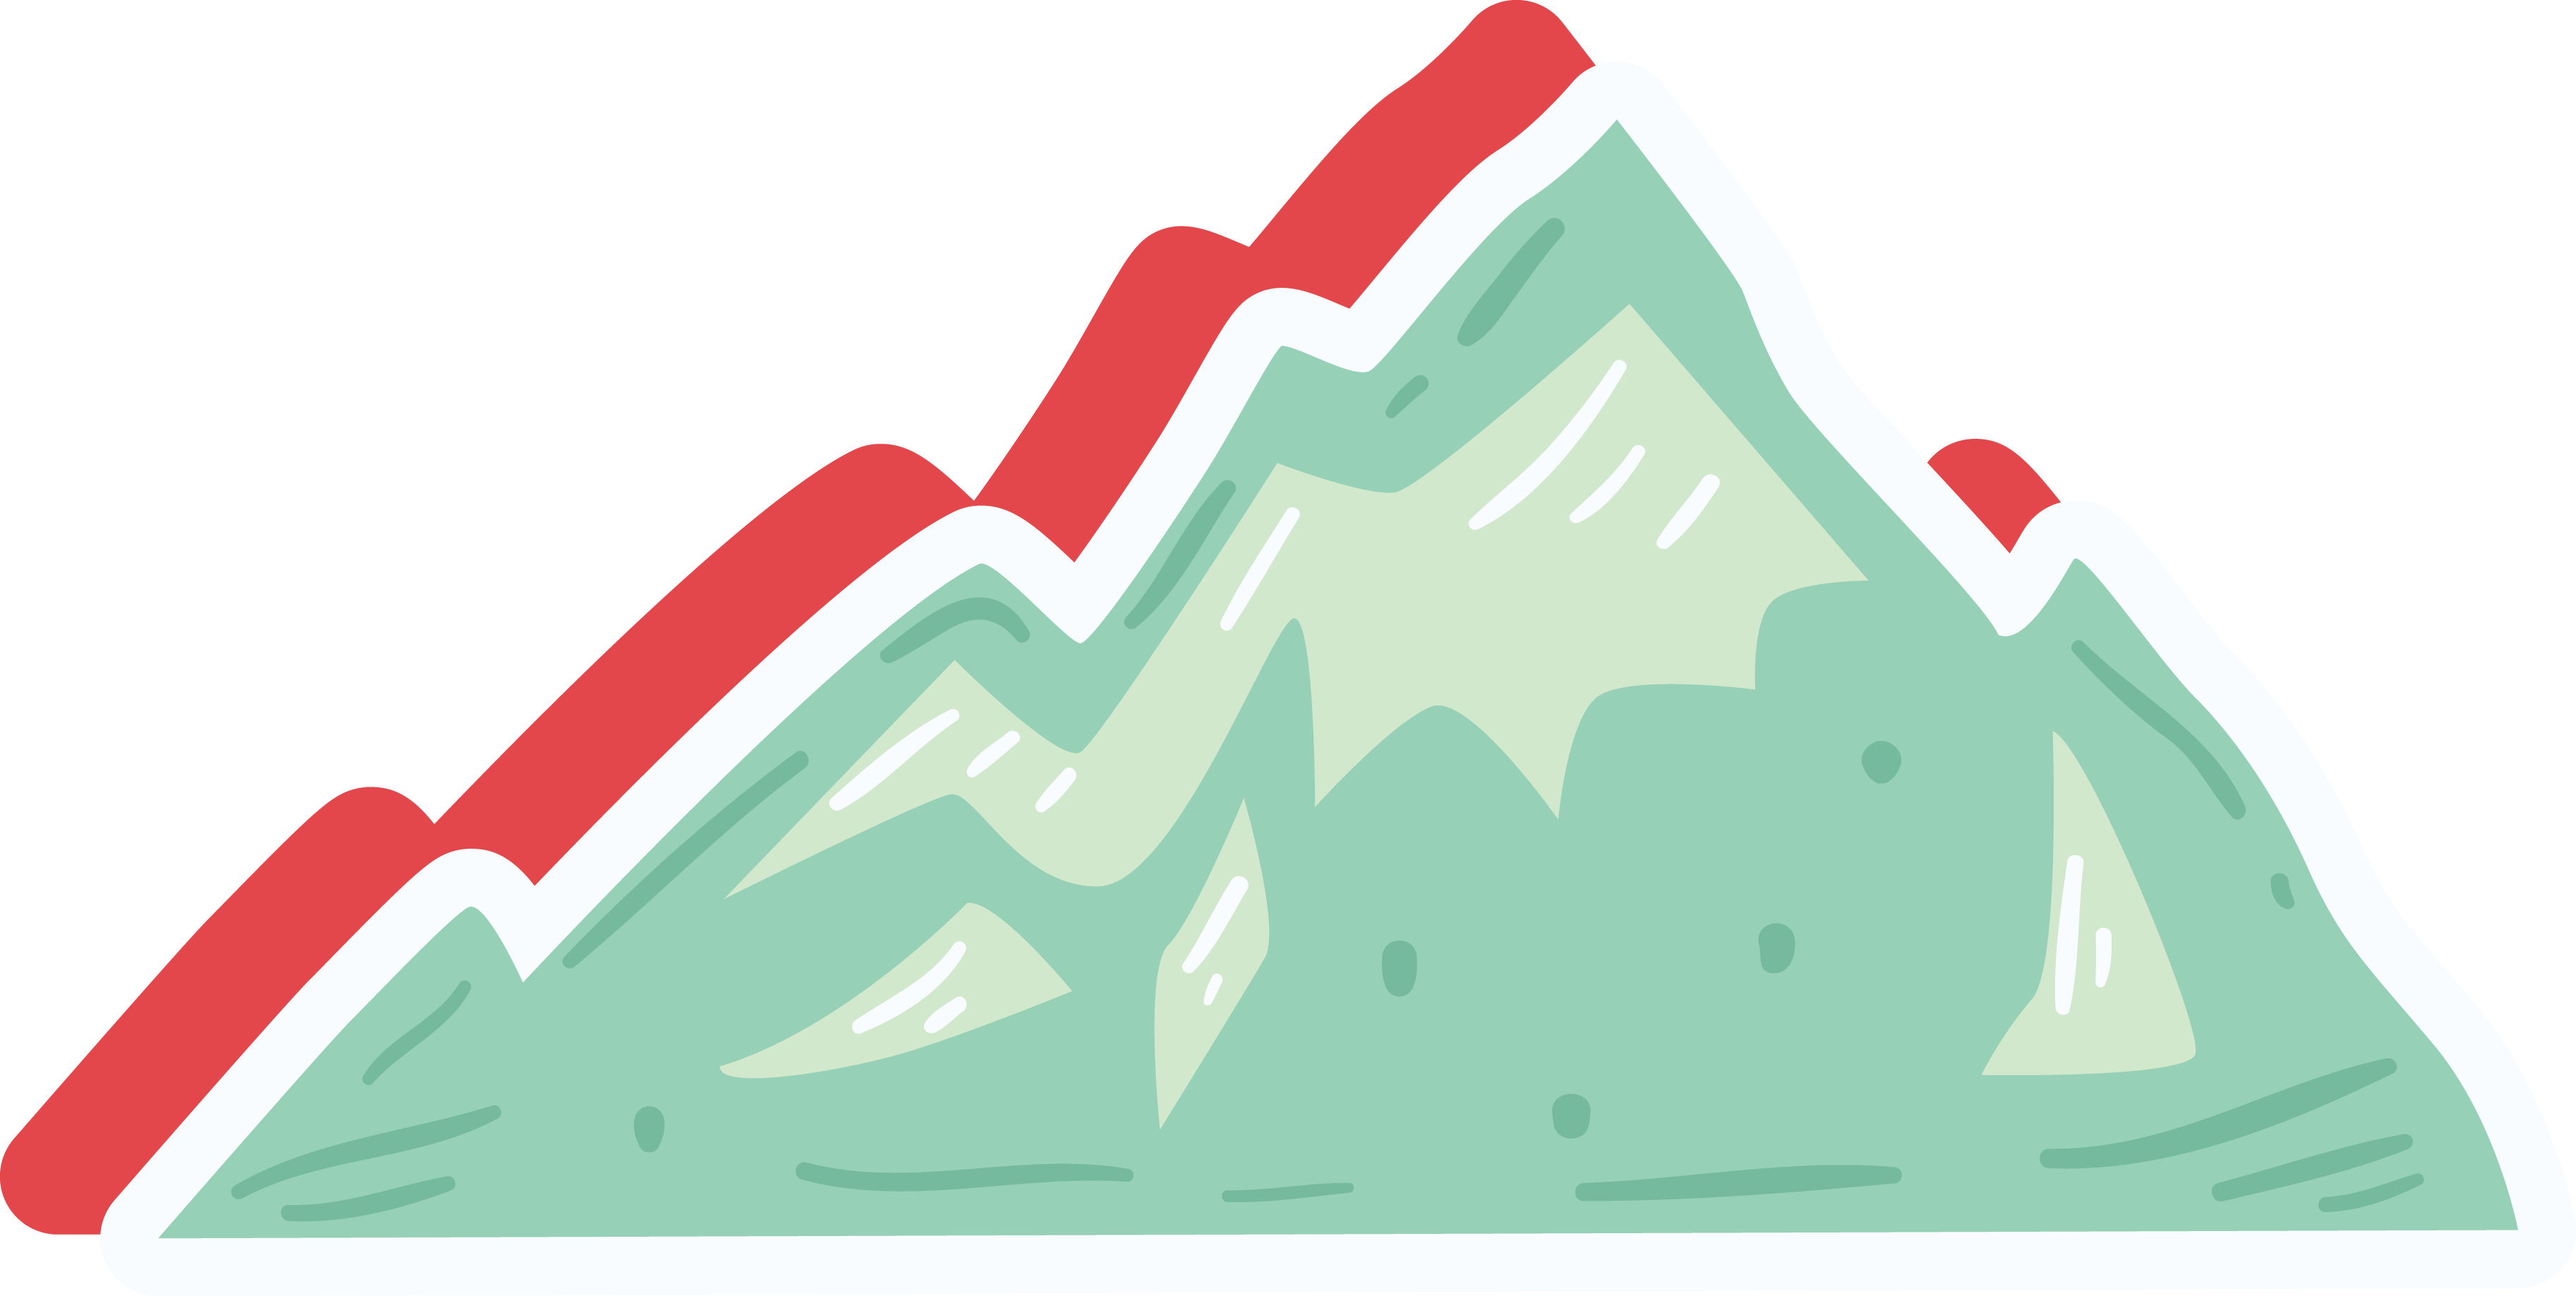 Clipart mountain mountain range. Cartoon clip art green